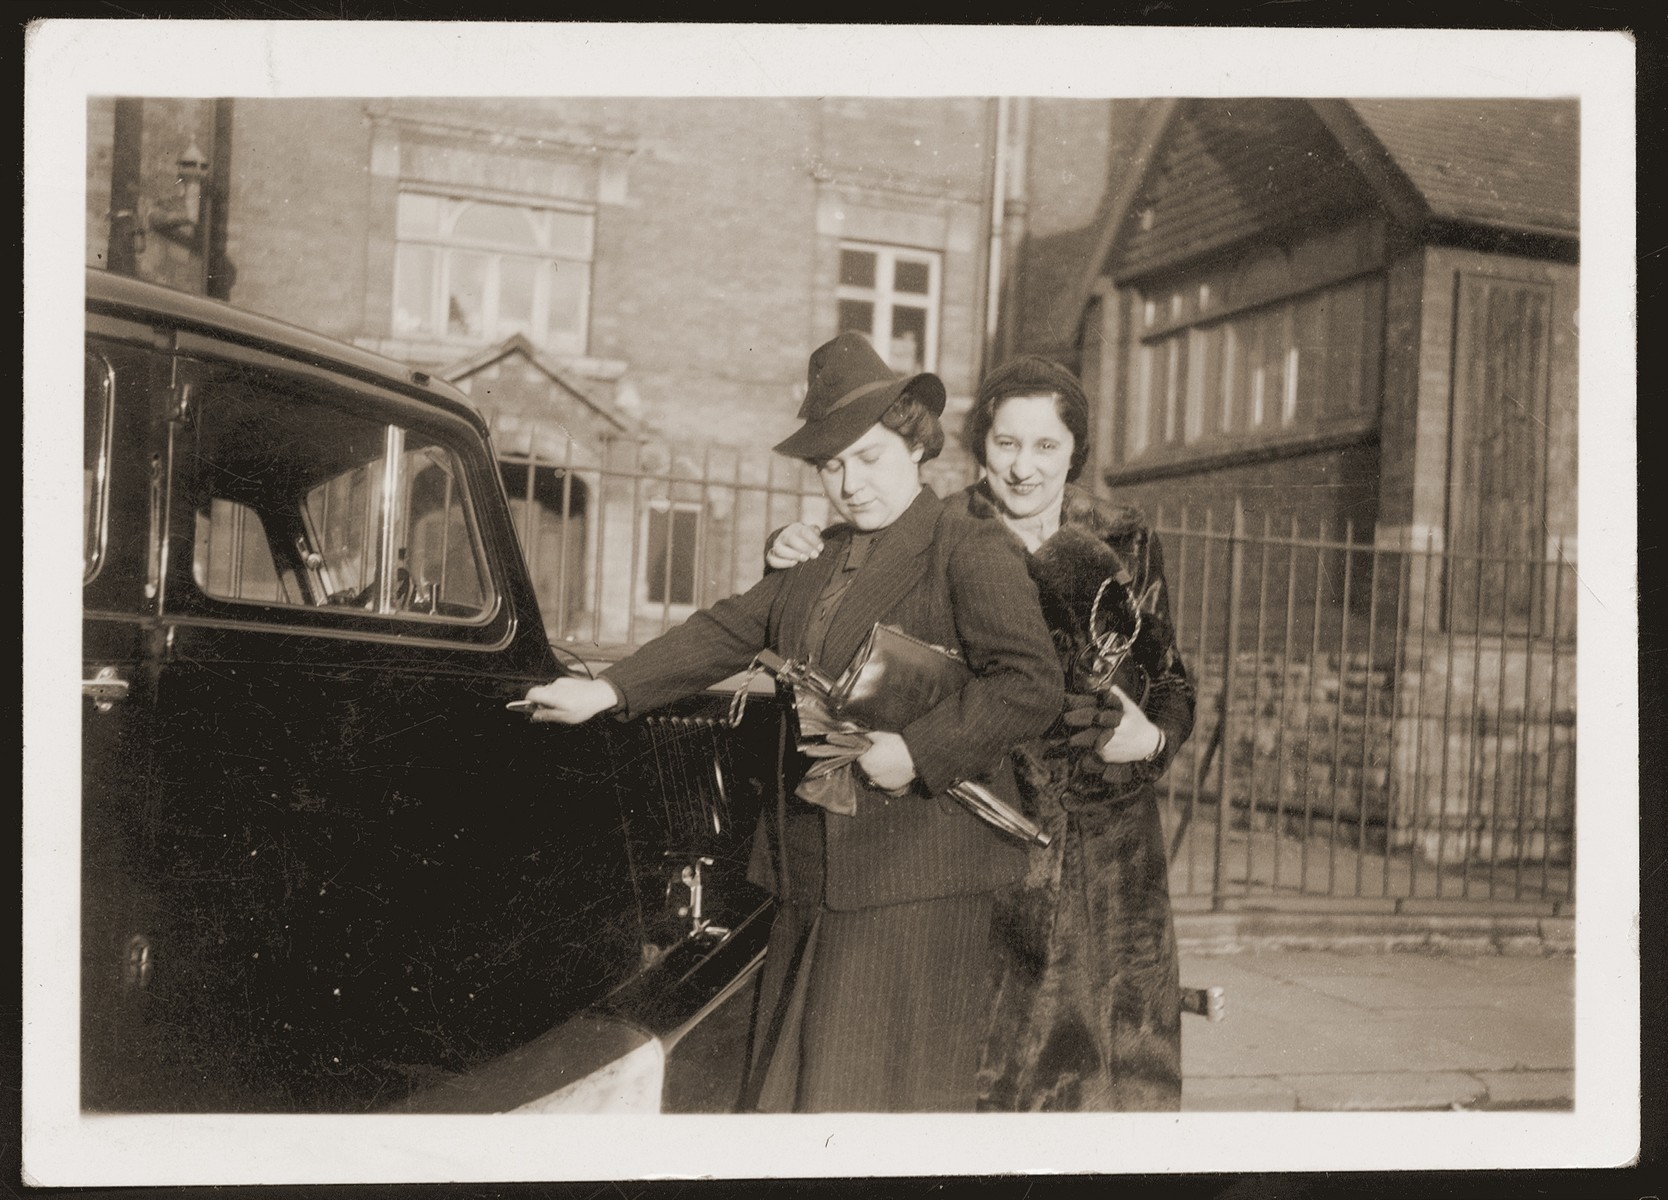 Hanne Loewenthal (left) and her friend, Ilse Suesskind, in front of the Loewenthal home in Stettin.  This photograph was sent by Hanne Loewenthal to her fiance, Walter Jacobsberg, in Shanghai.